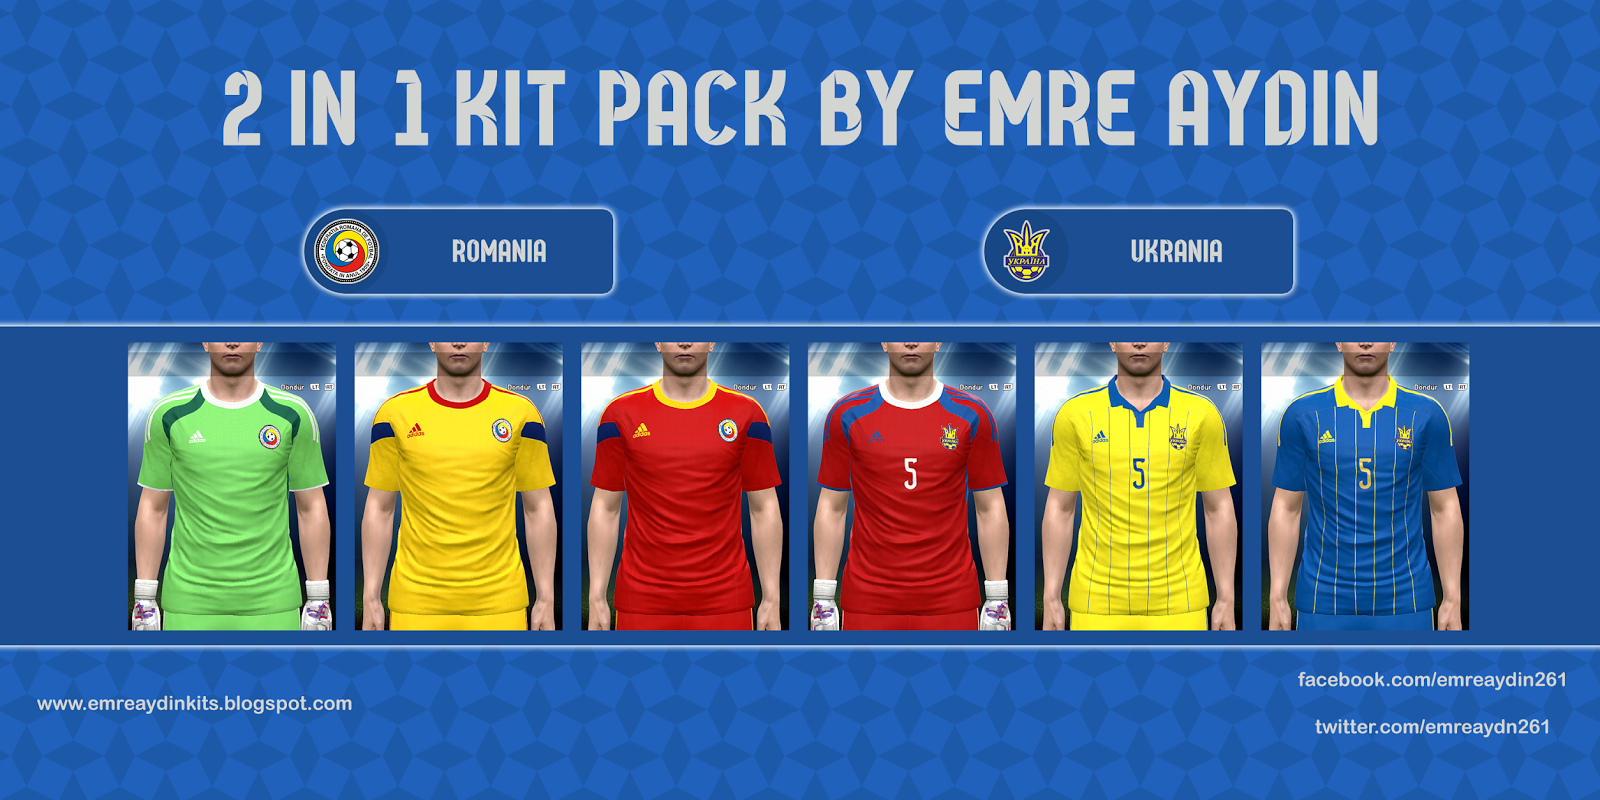 PES 2015 2 In 1 Kit Pack (Romania, Ukraine) by Emre Aydin